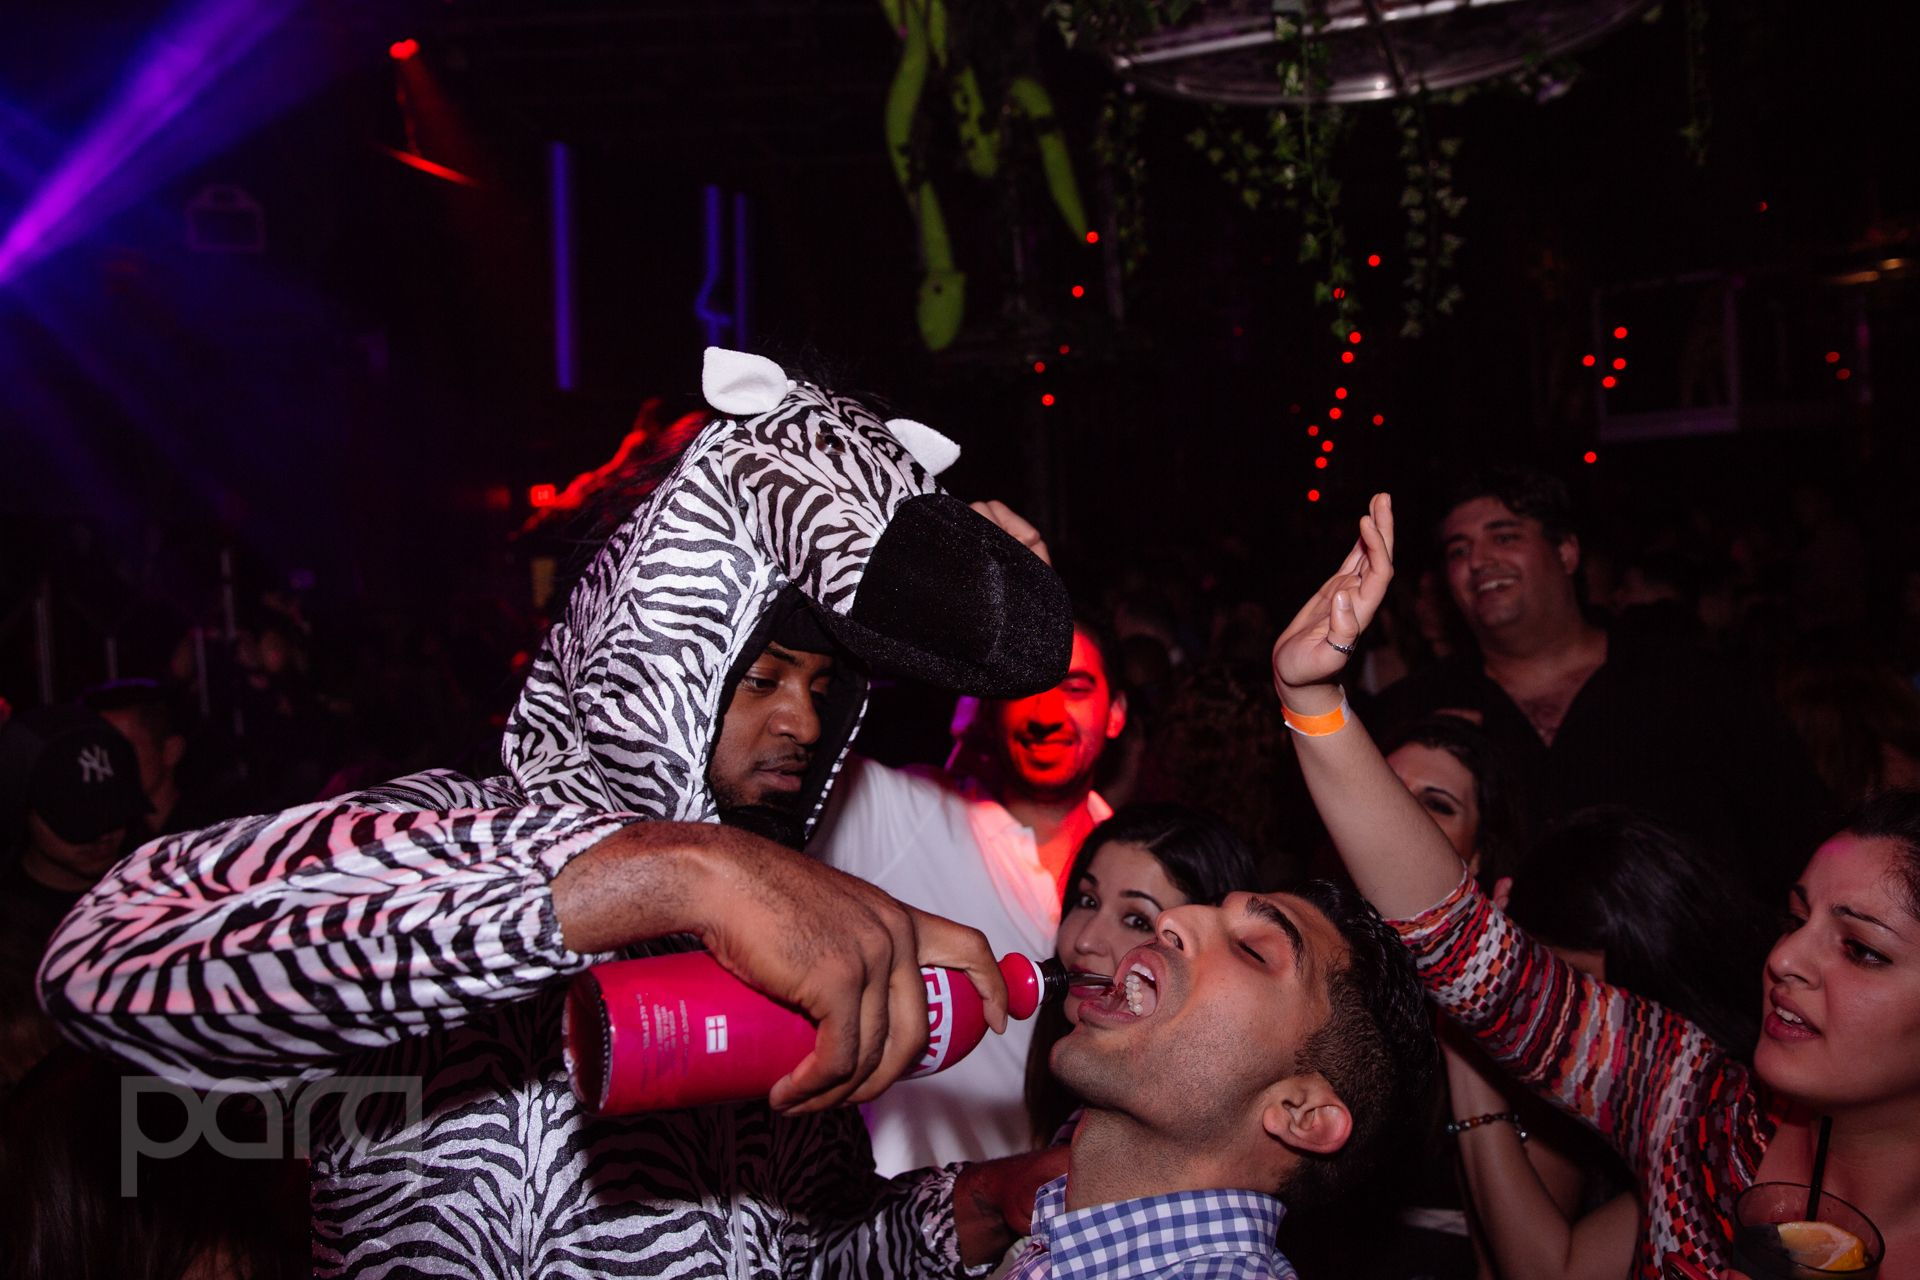 San-Diego-Nightclub-Zoo Funktion-20.jpg